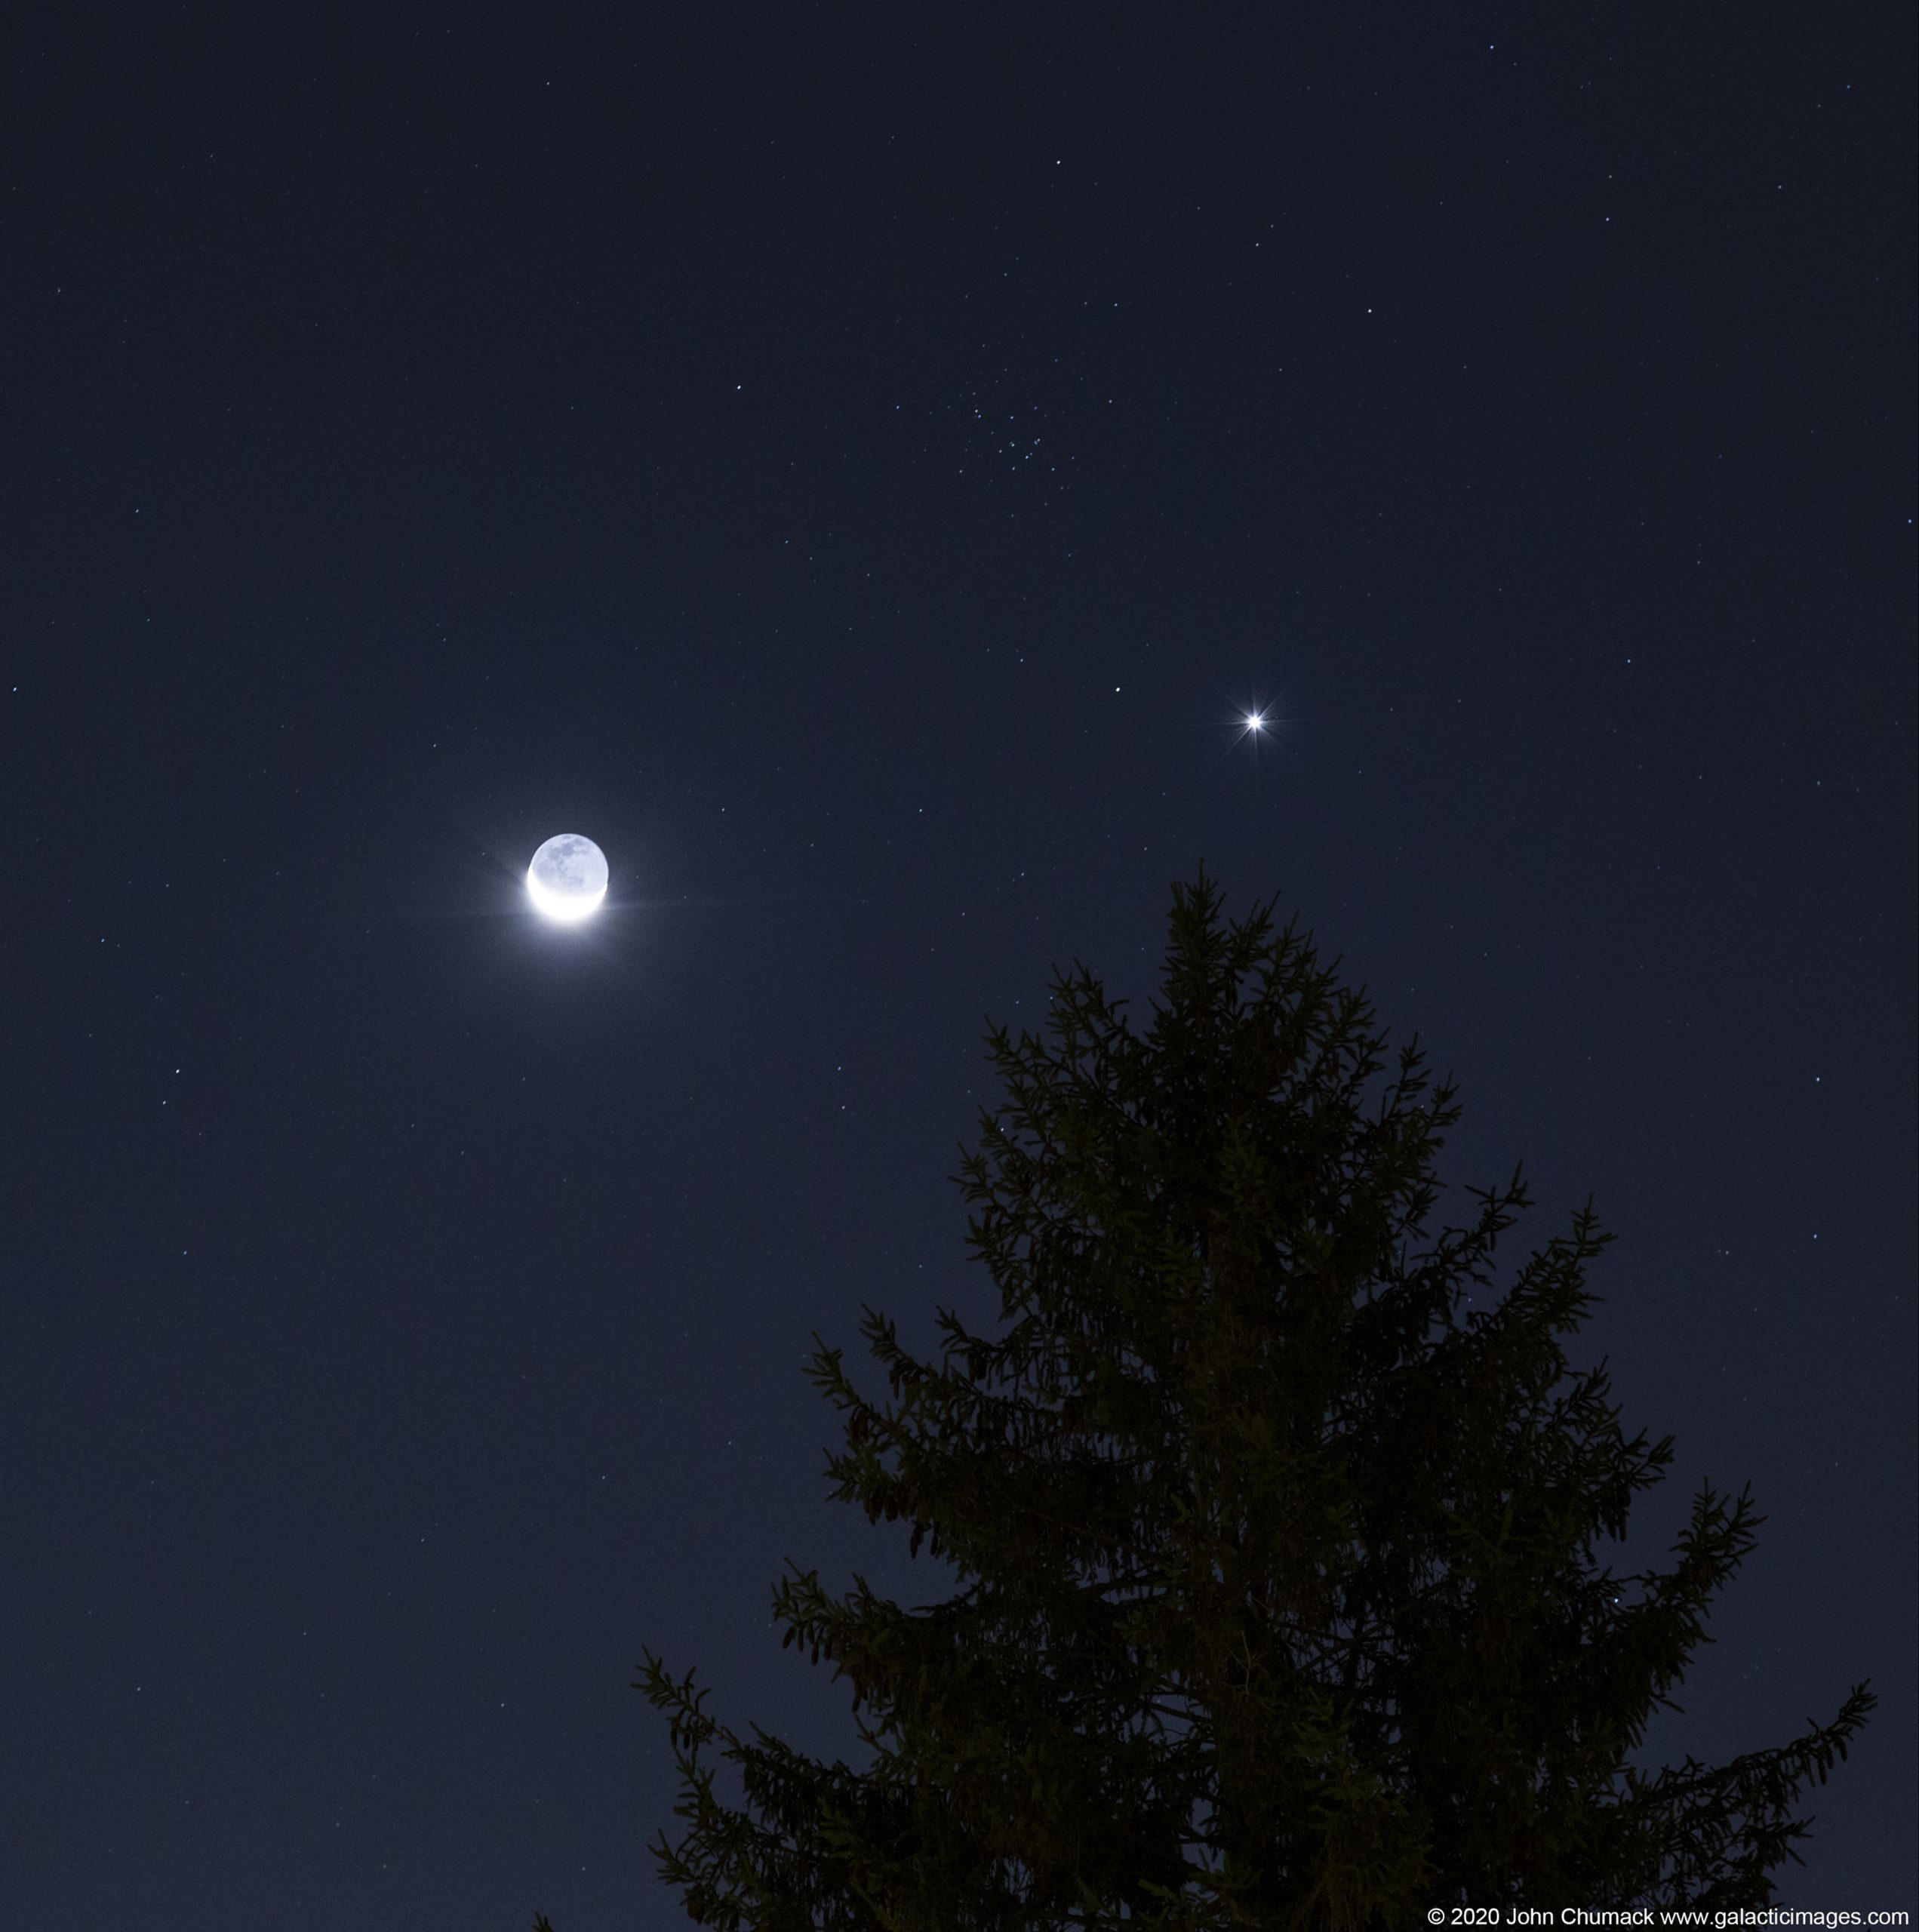 The waning crescent Moon and The Planet Venus and the Beehive Cluster joining together in the early morning sky on 09-14-2020